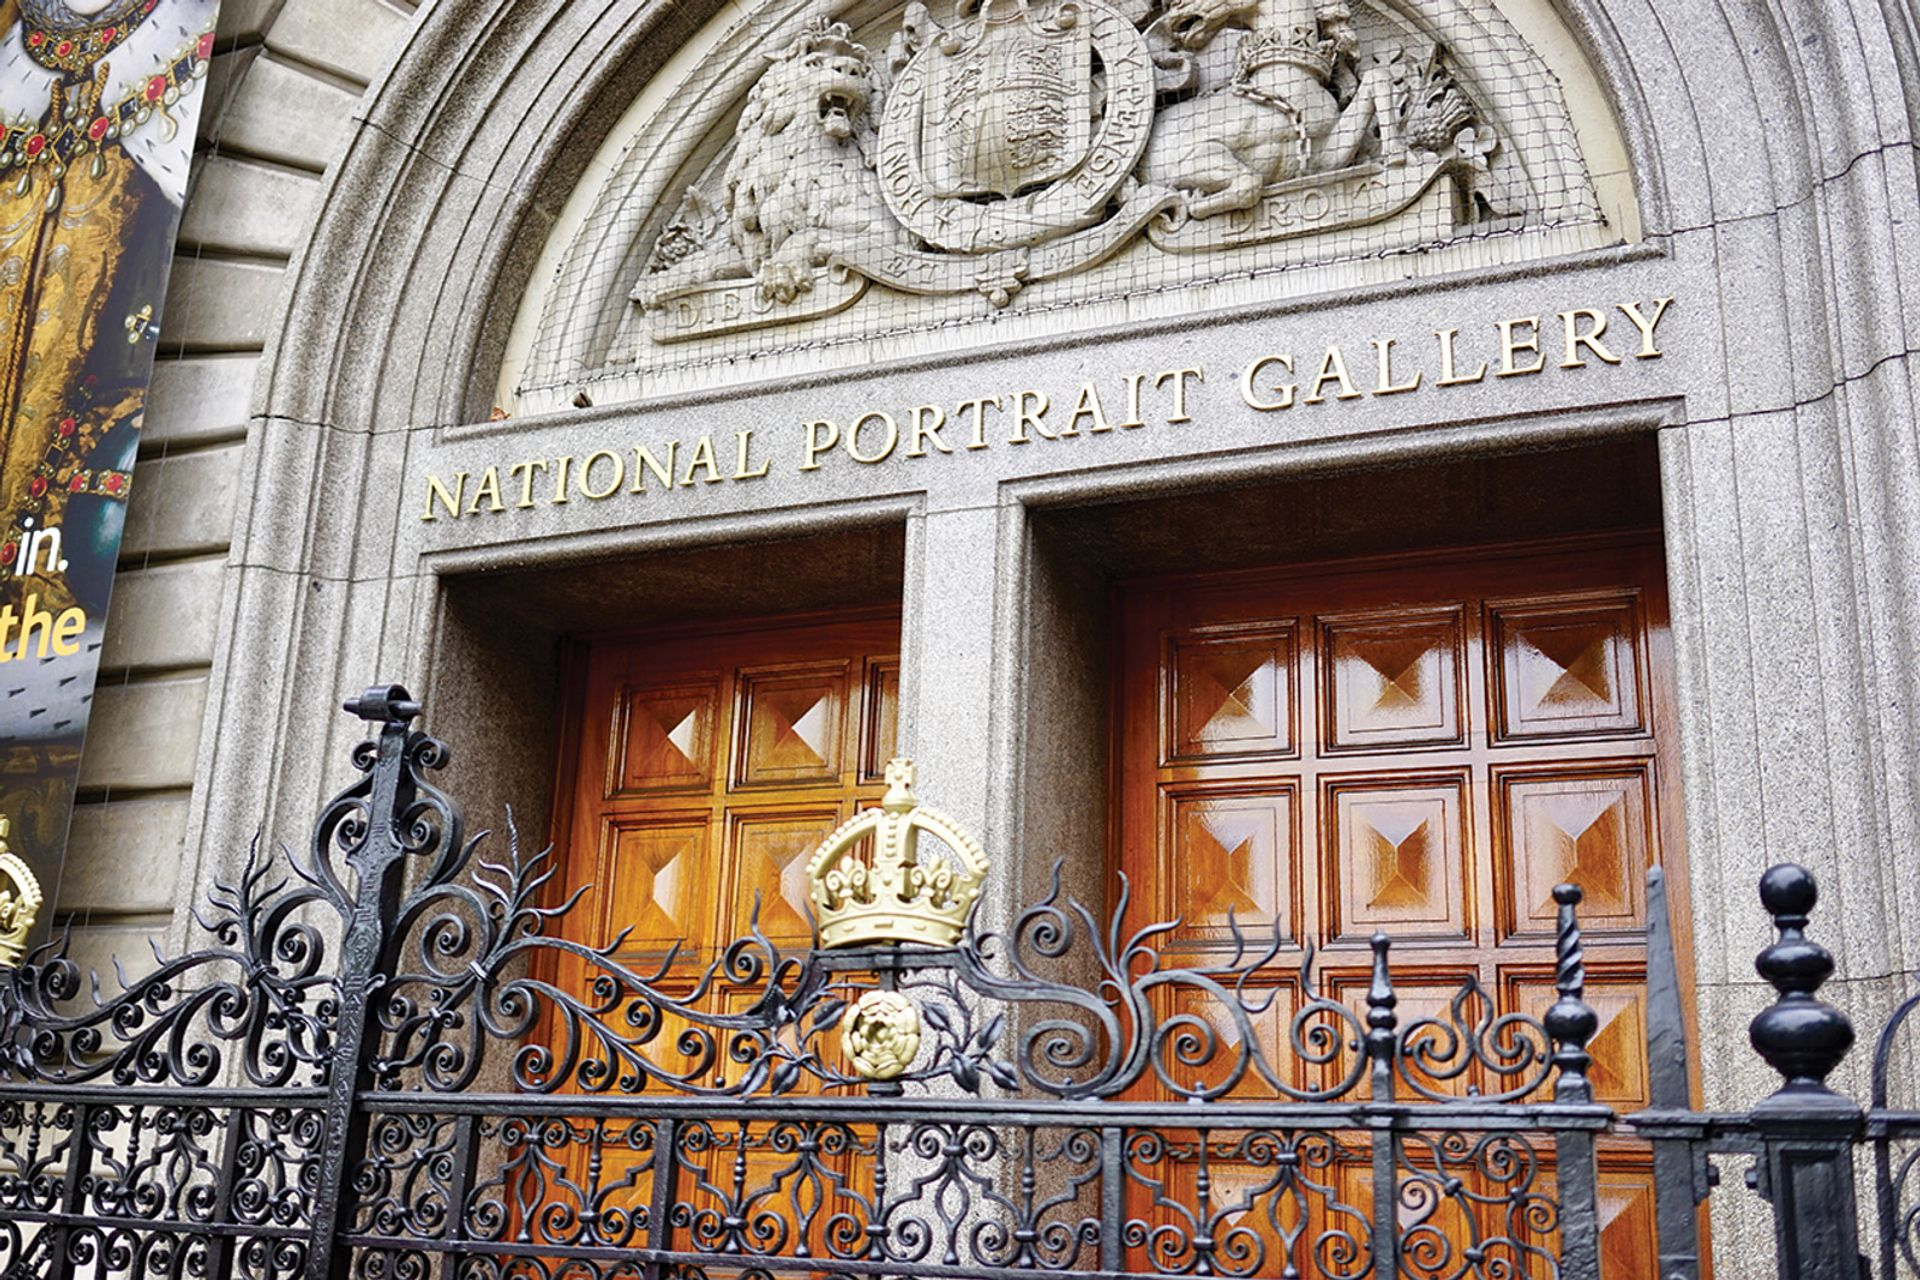 The National Portrait Gallery in London